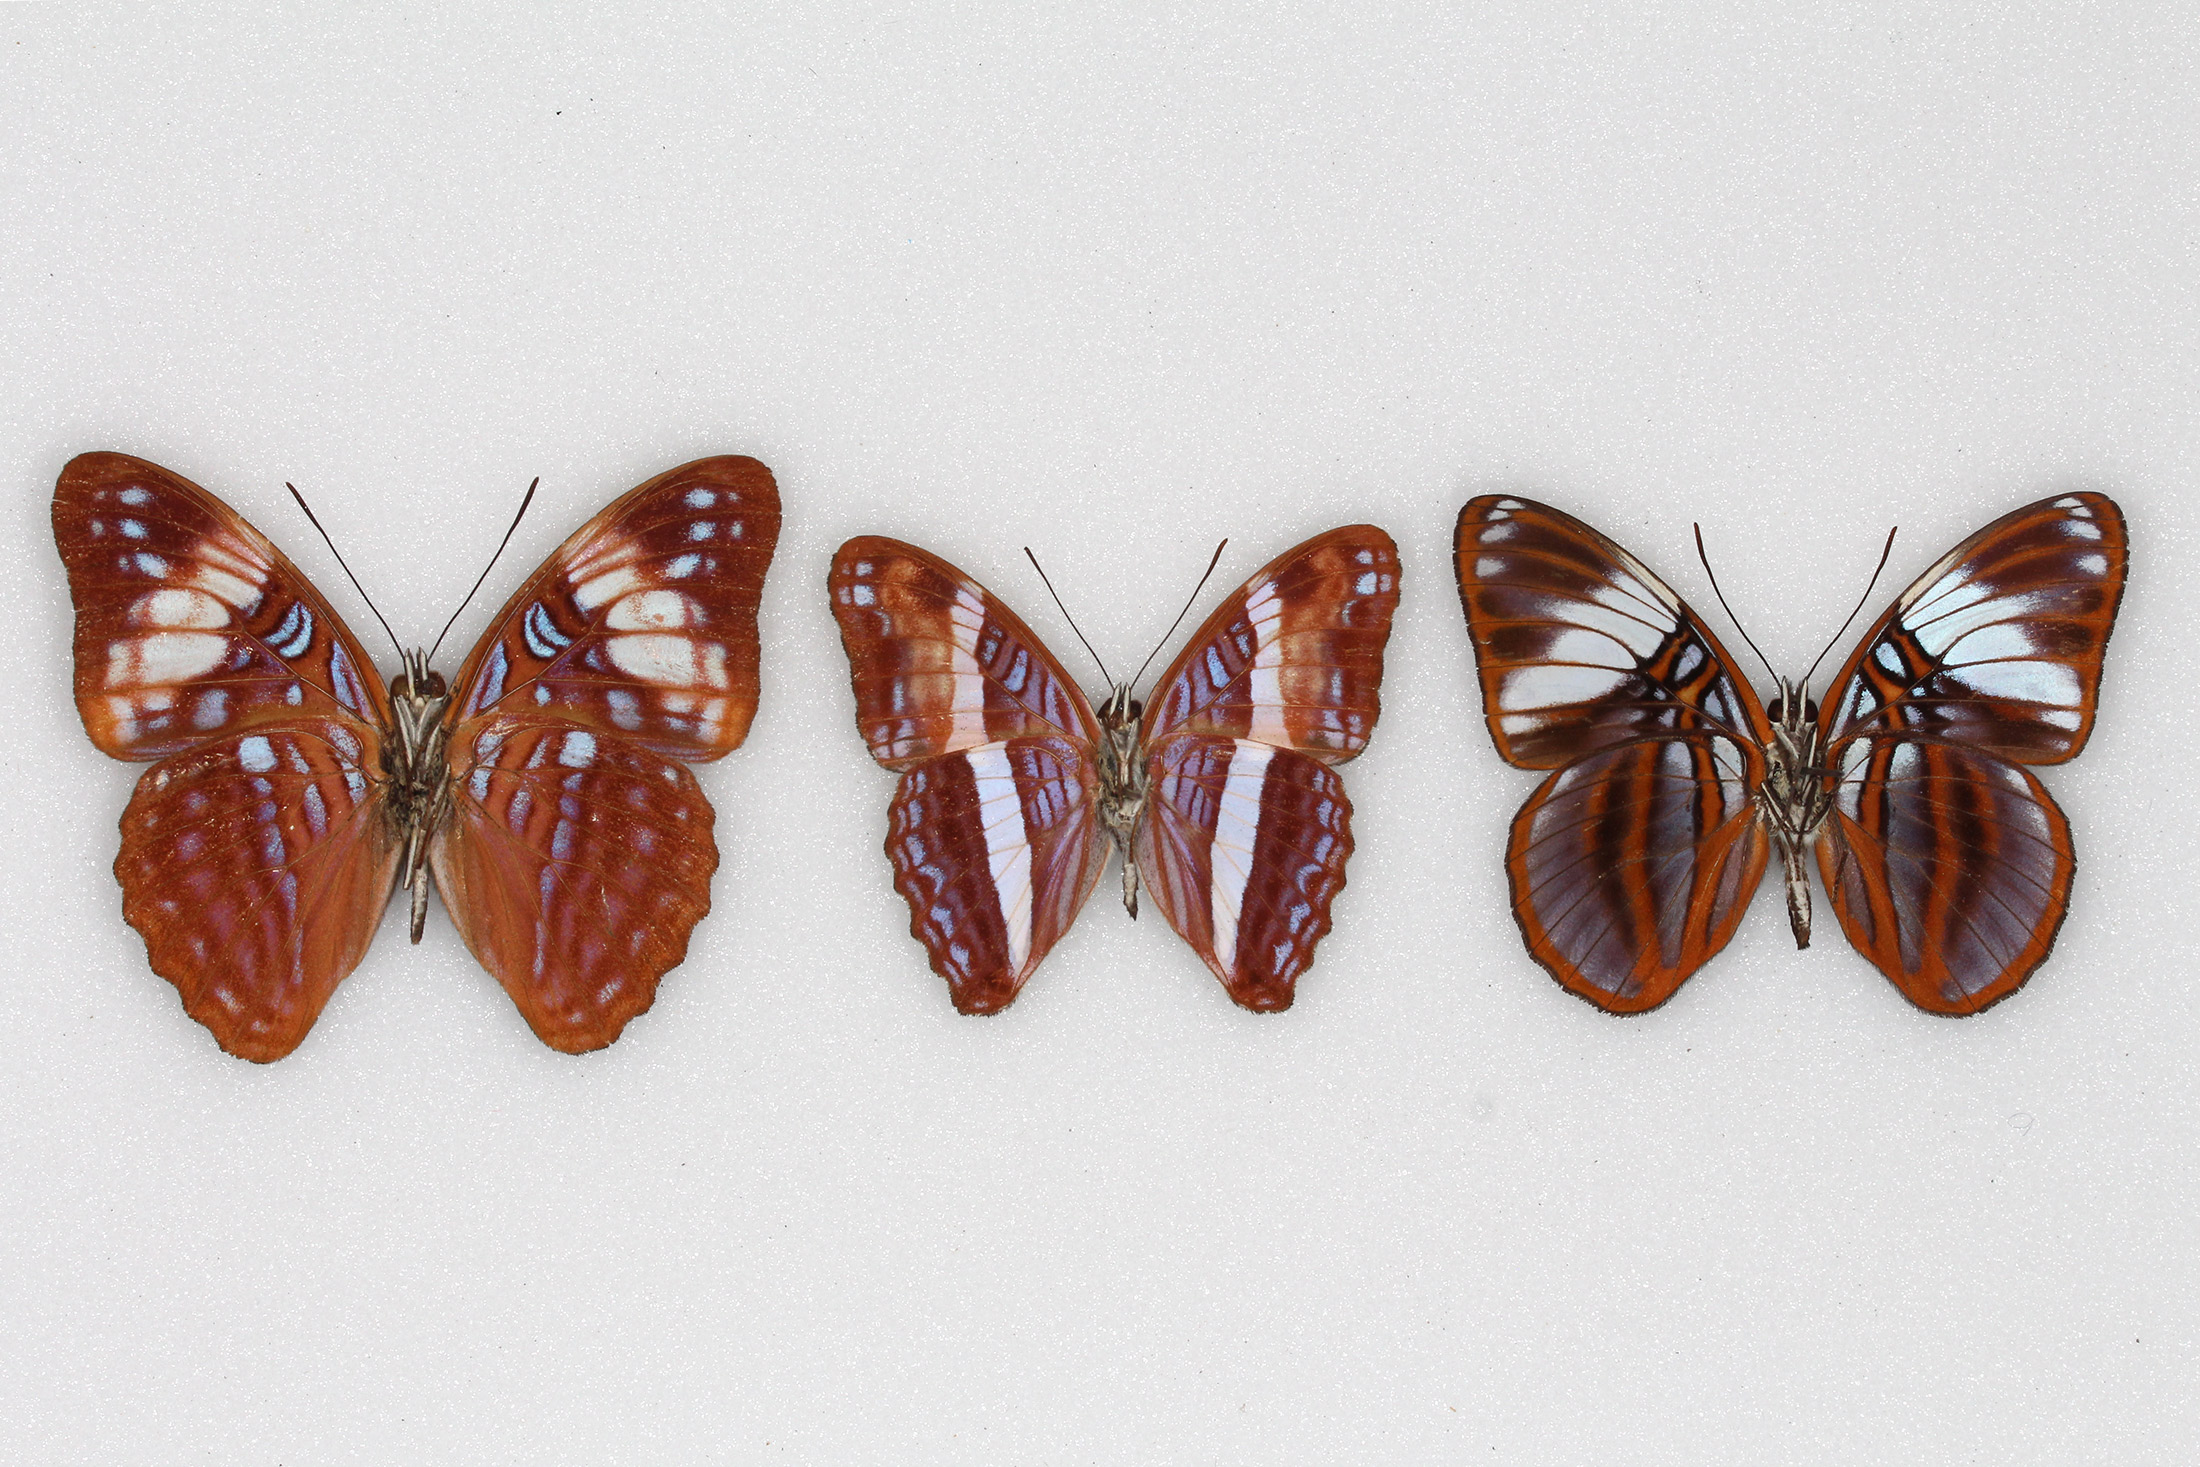 undersides of three butterfly specimens